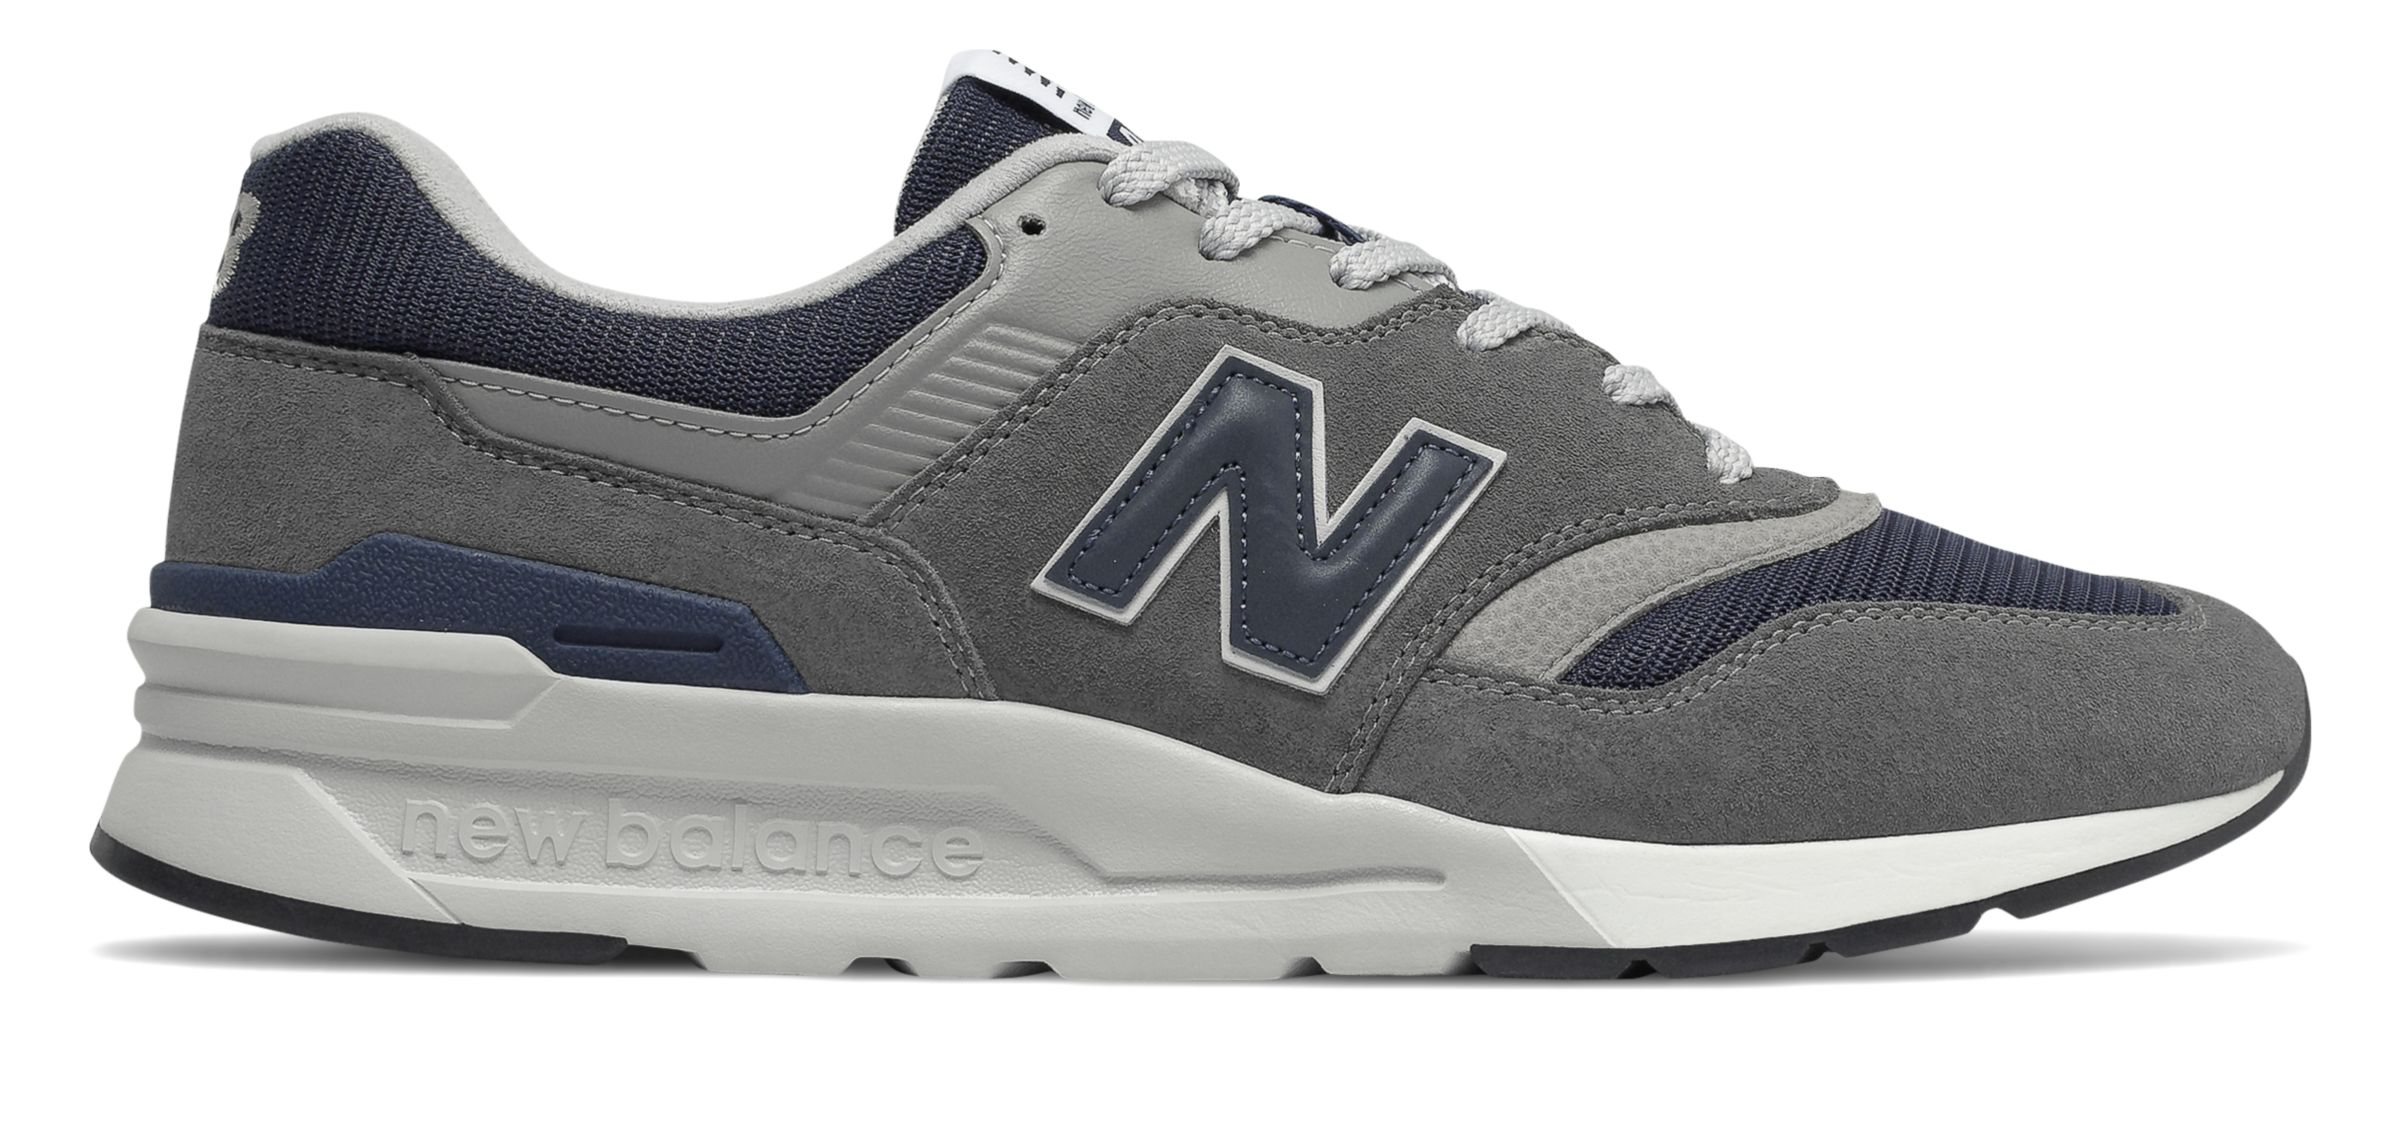 new balance 977h Shop Clothing & Shoes Online